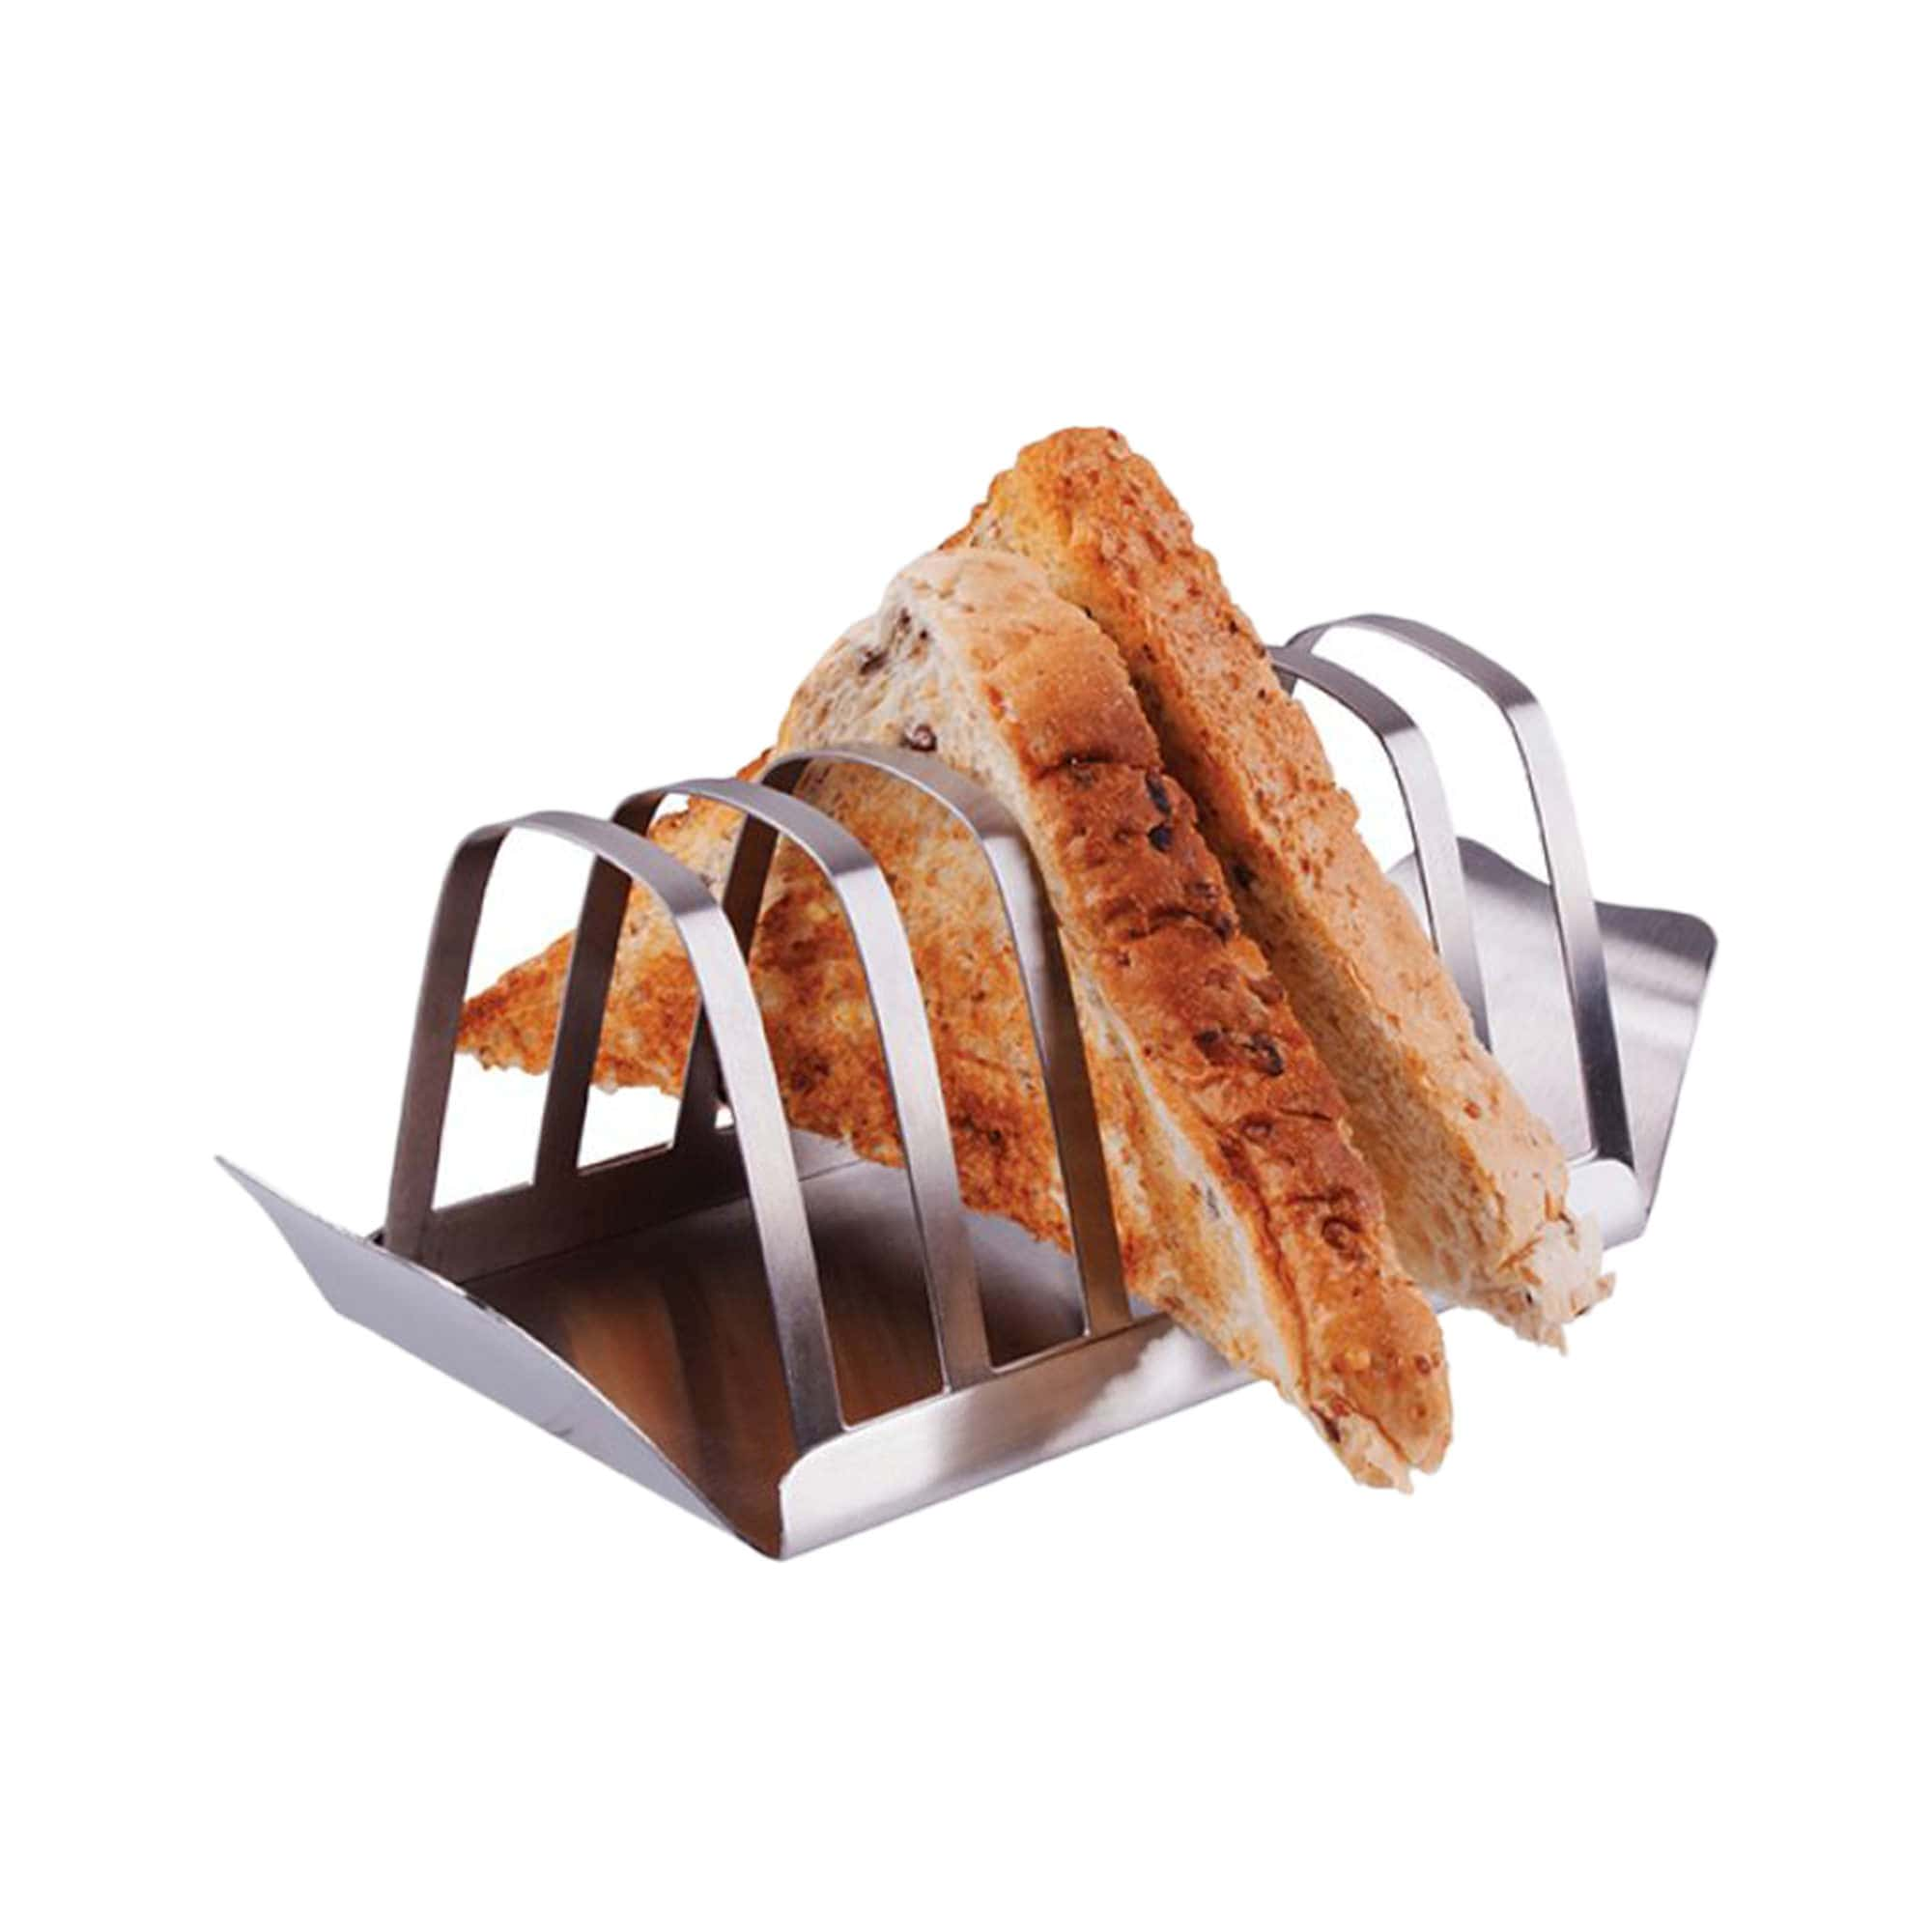 D.Line Stainless Steel Toast Rack with Tray image #4